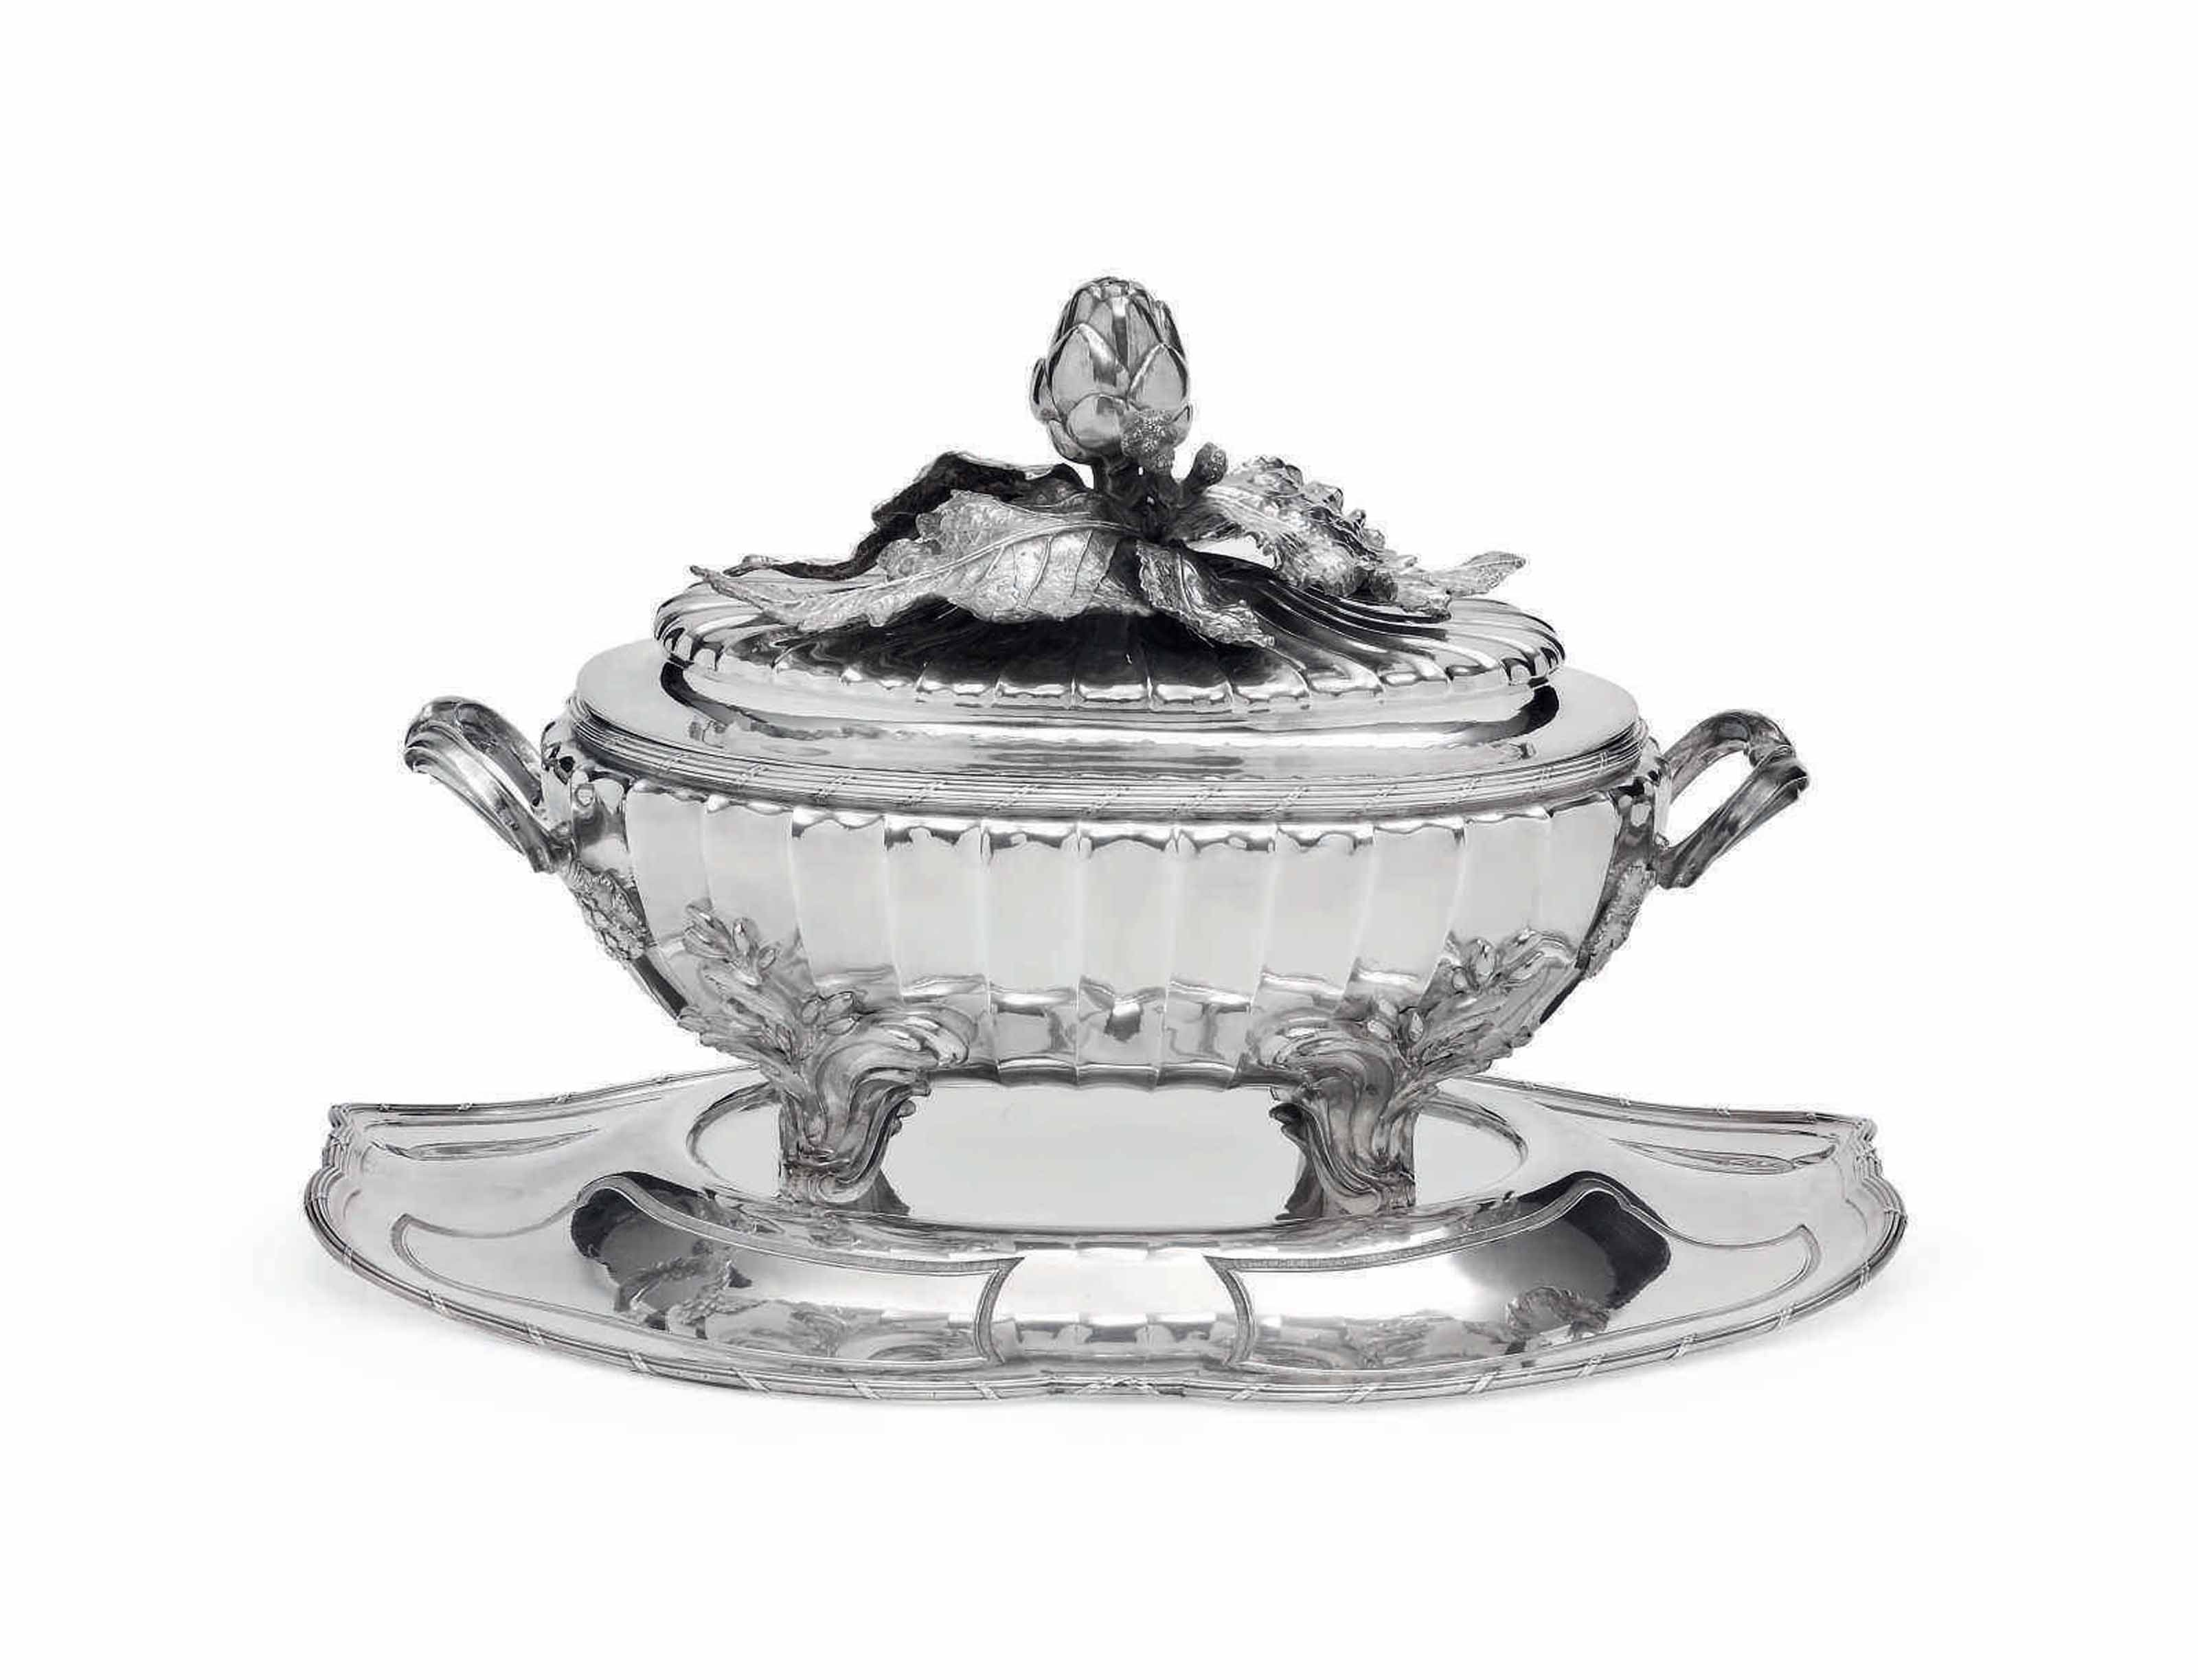 A LOUIS XV SILVER SOUP-TUREEN, COVER AND STAND